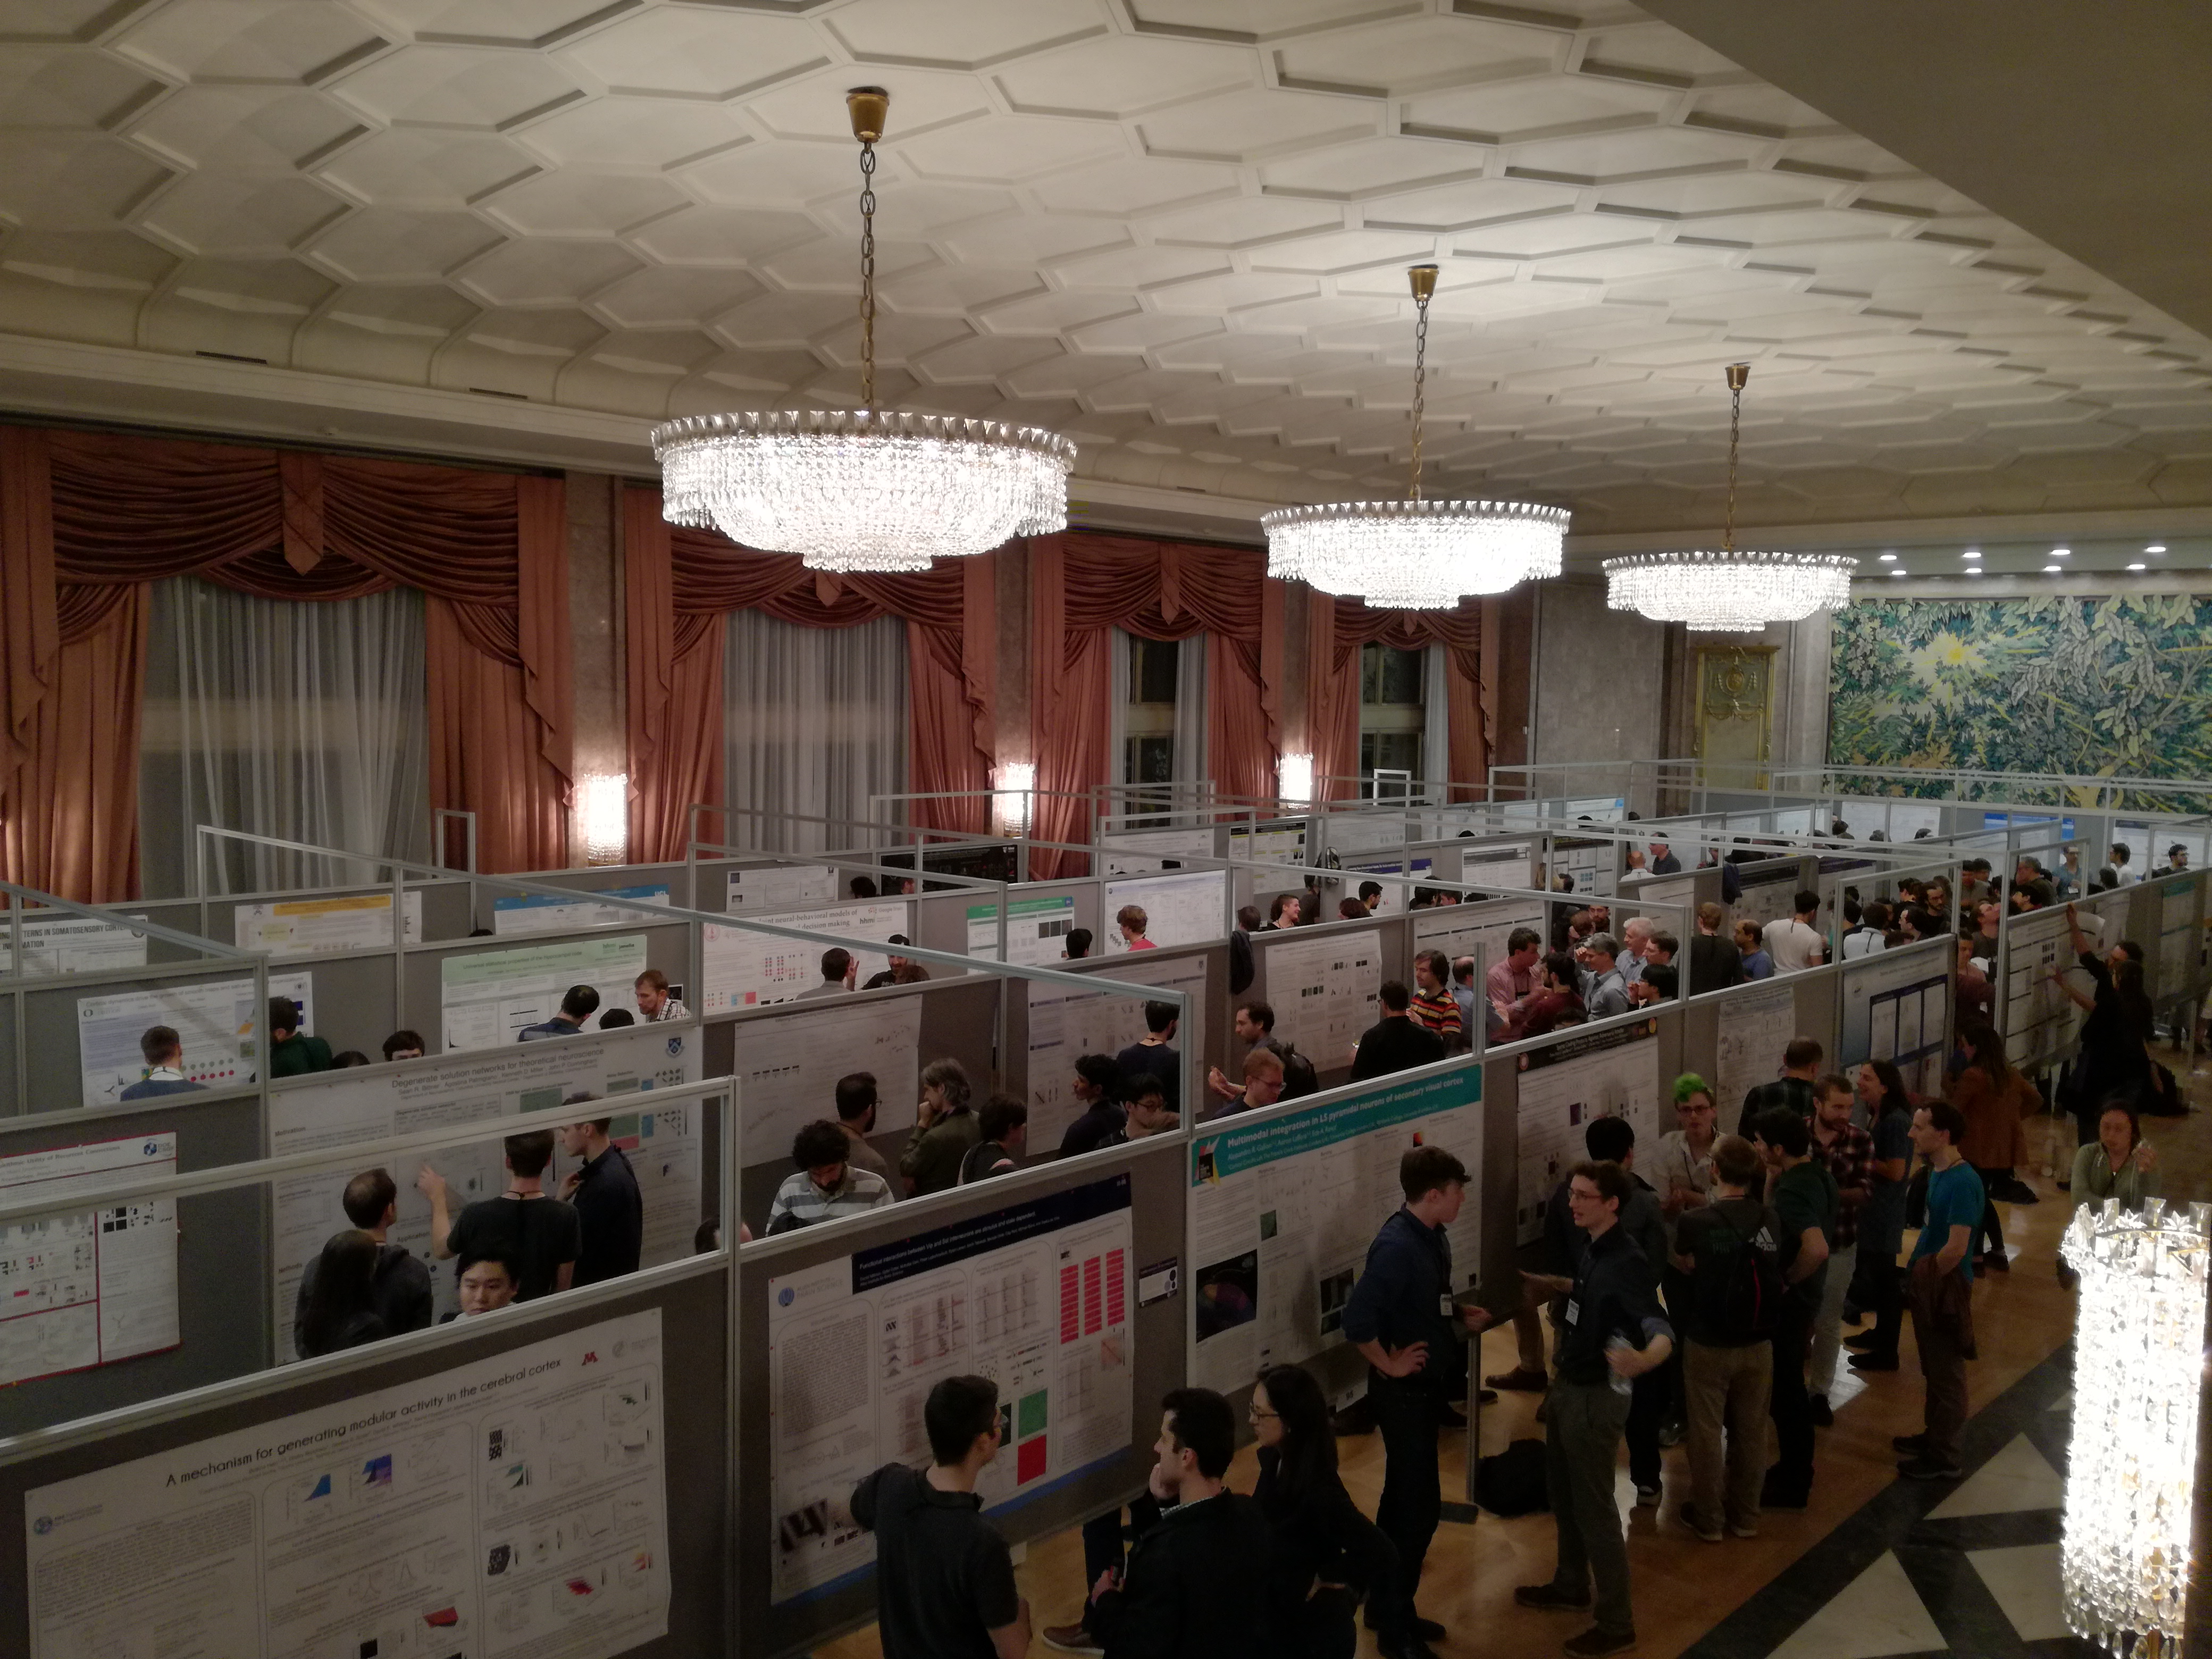 Postersession at the meeting